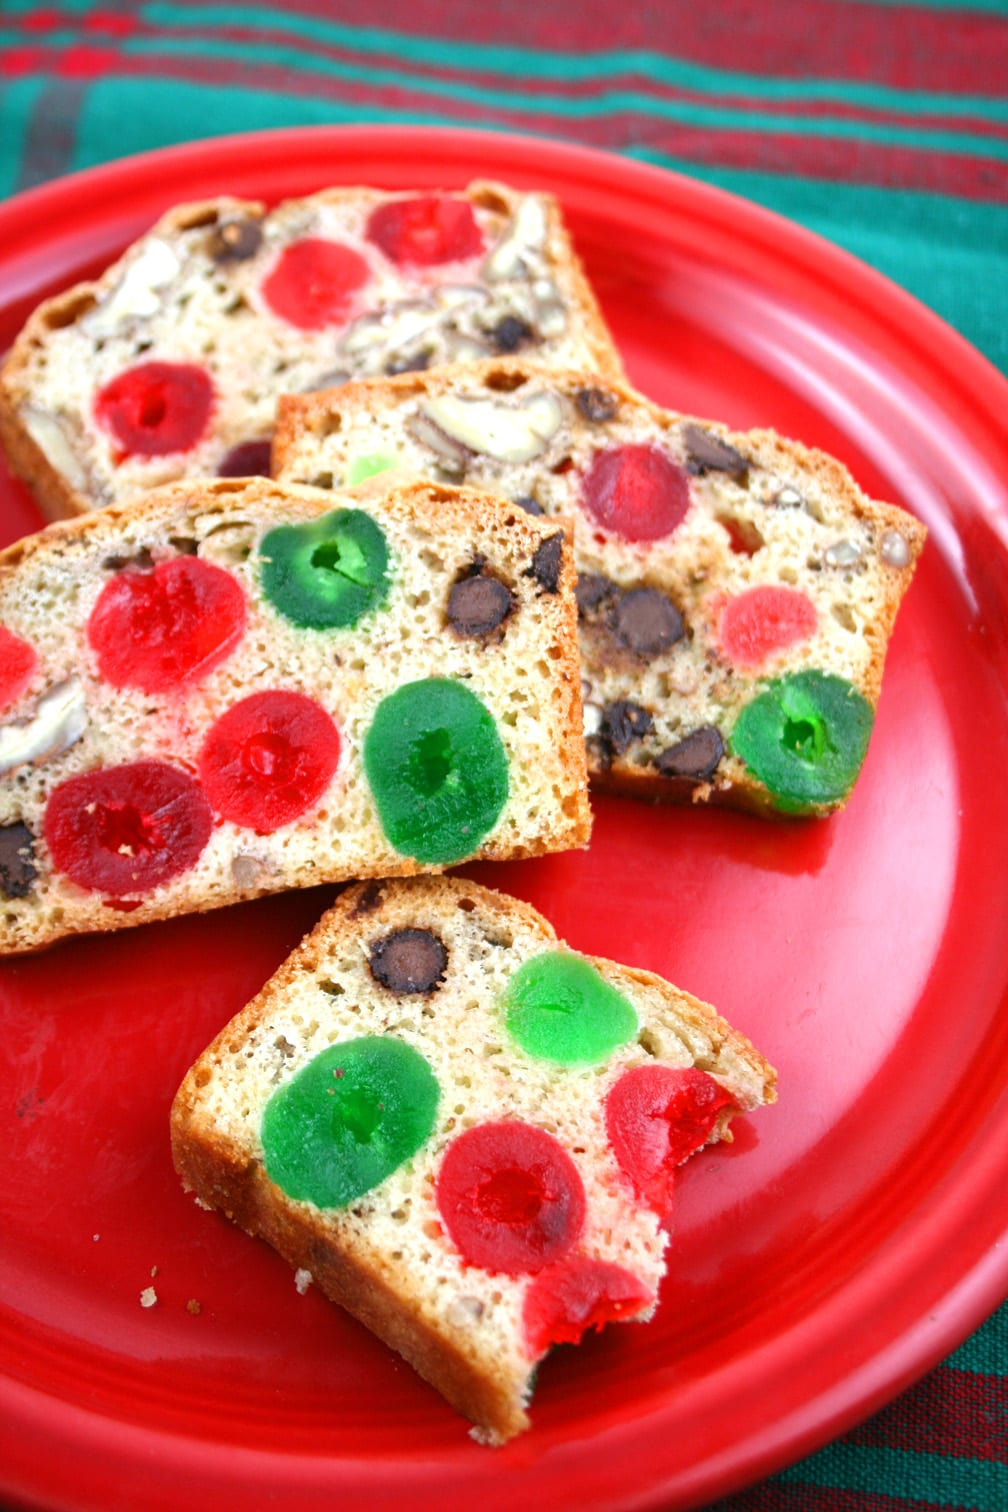 Bishop's bread Christmas bread like fruitcake gluten free candied cherries